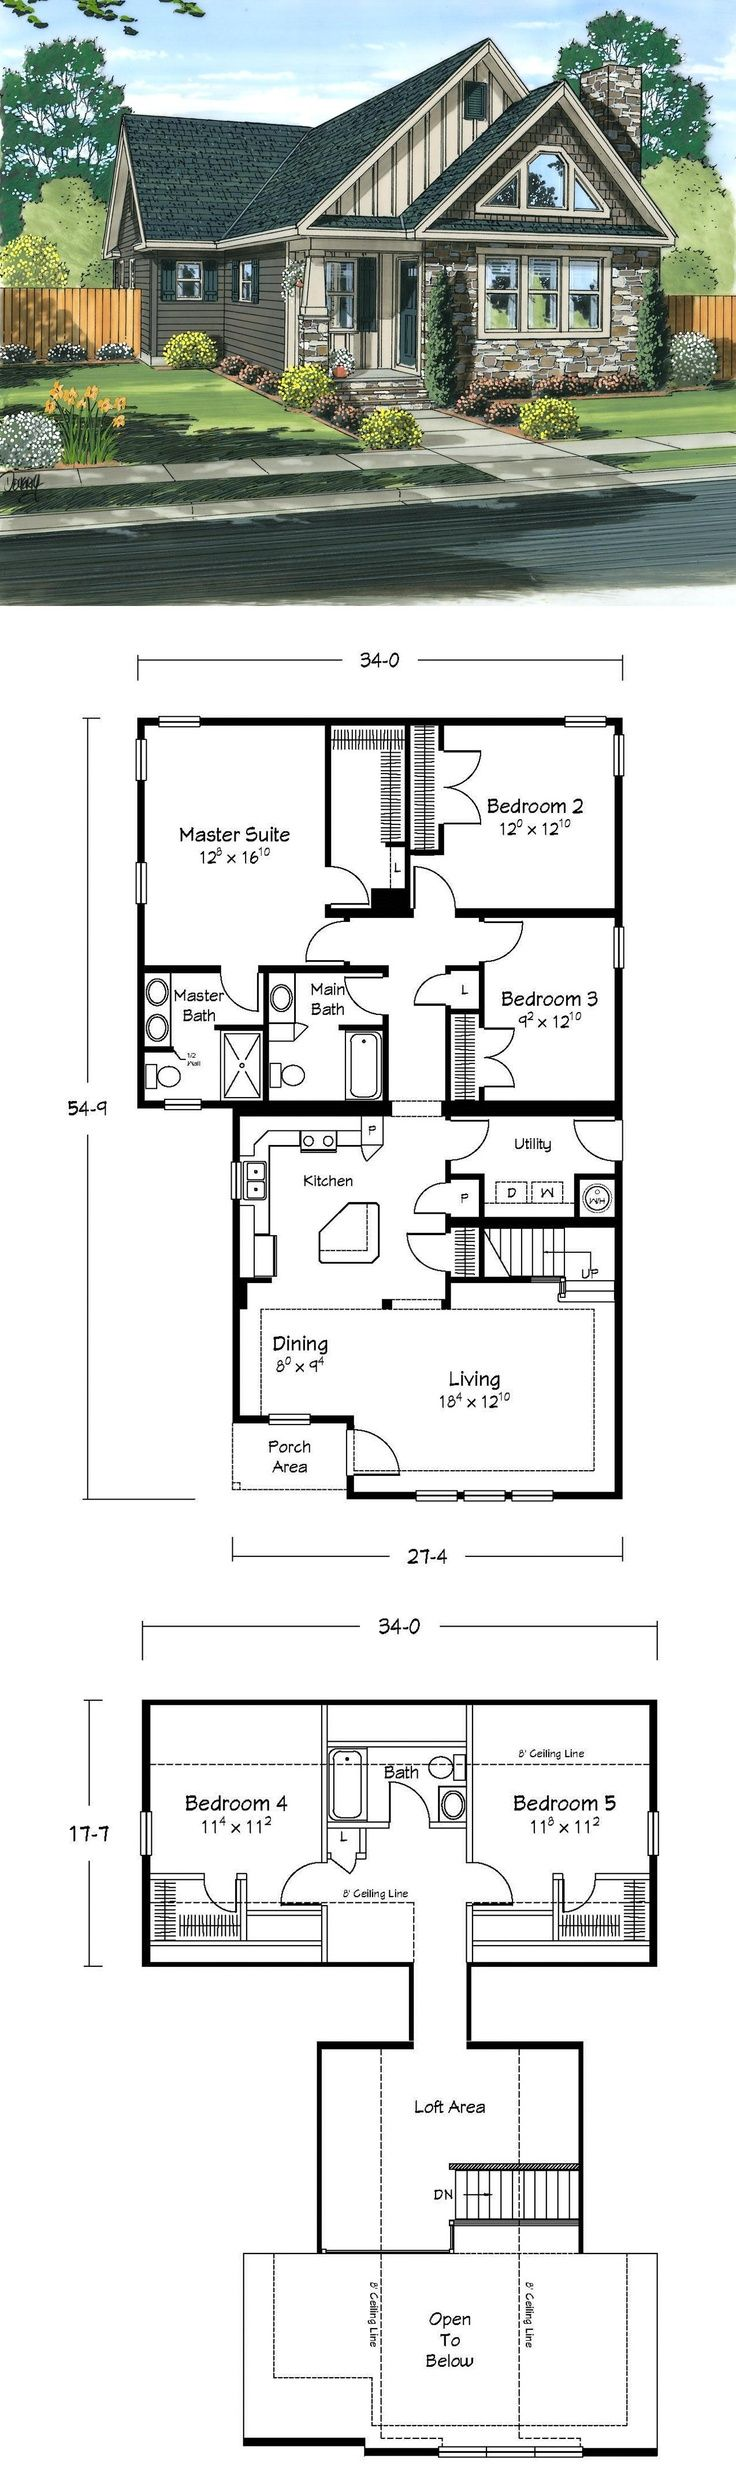 top 25 best affordable house plans ideas on pinterest house this is our house of the month for september what do you think